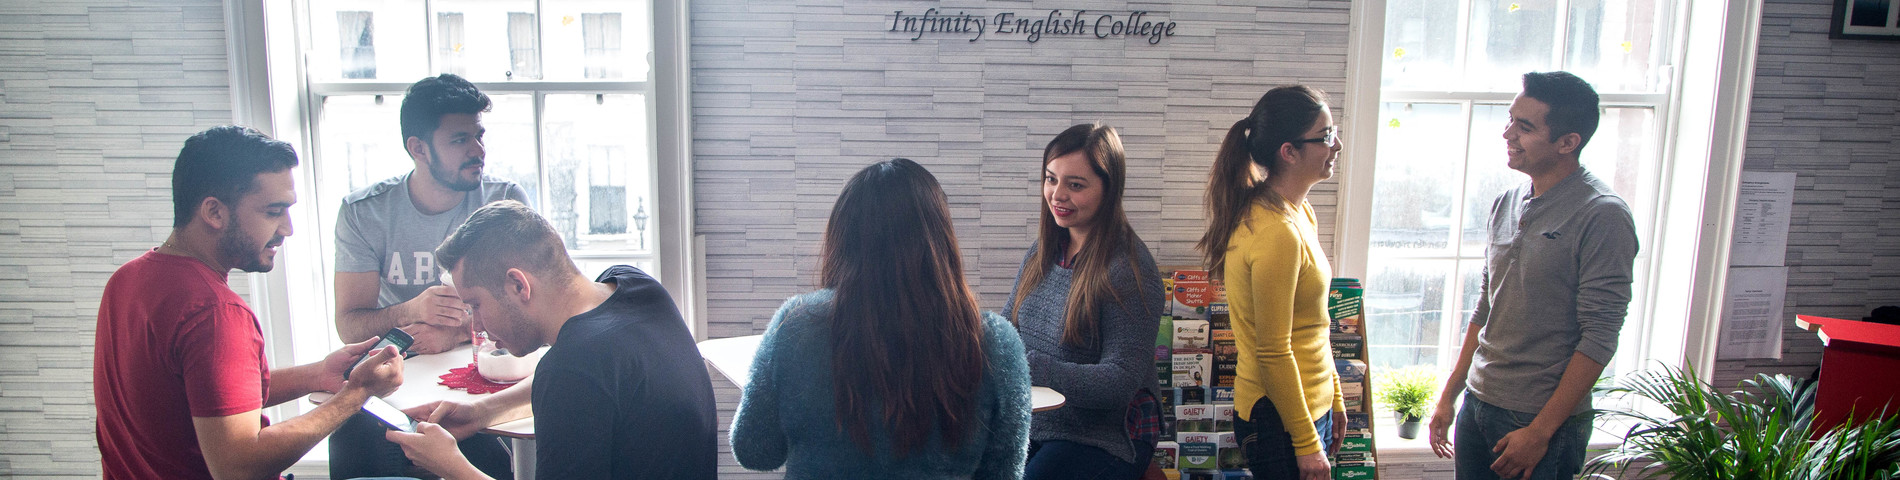 Infinity English College photo 1